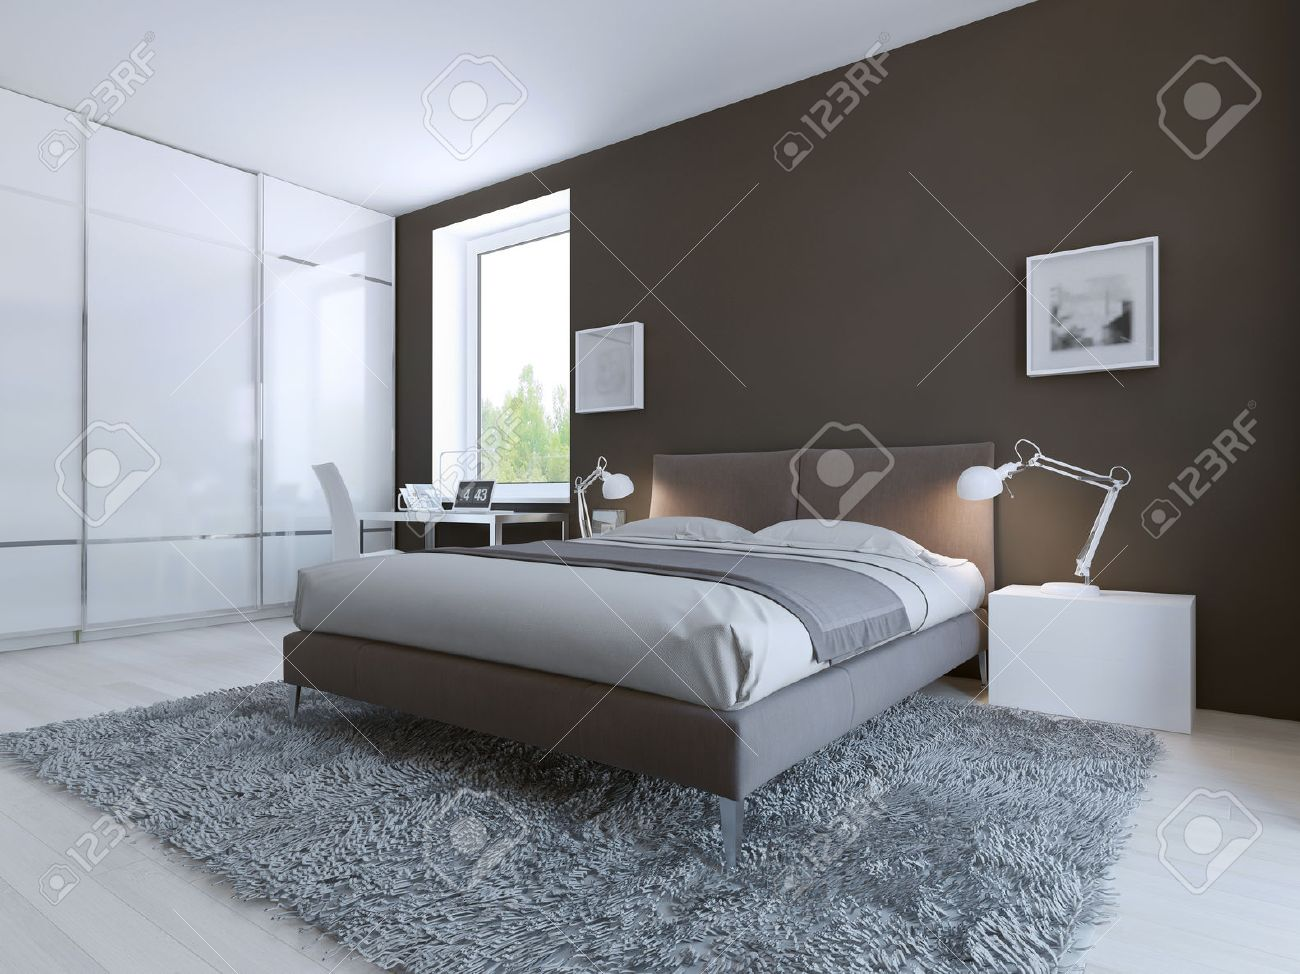 Minimalist Bedroom For Good Rest Large Floor To Ceilin Closet With Sliding Doors White